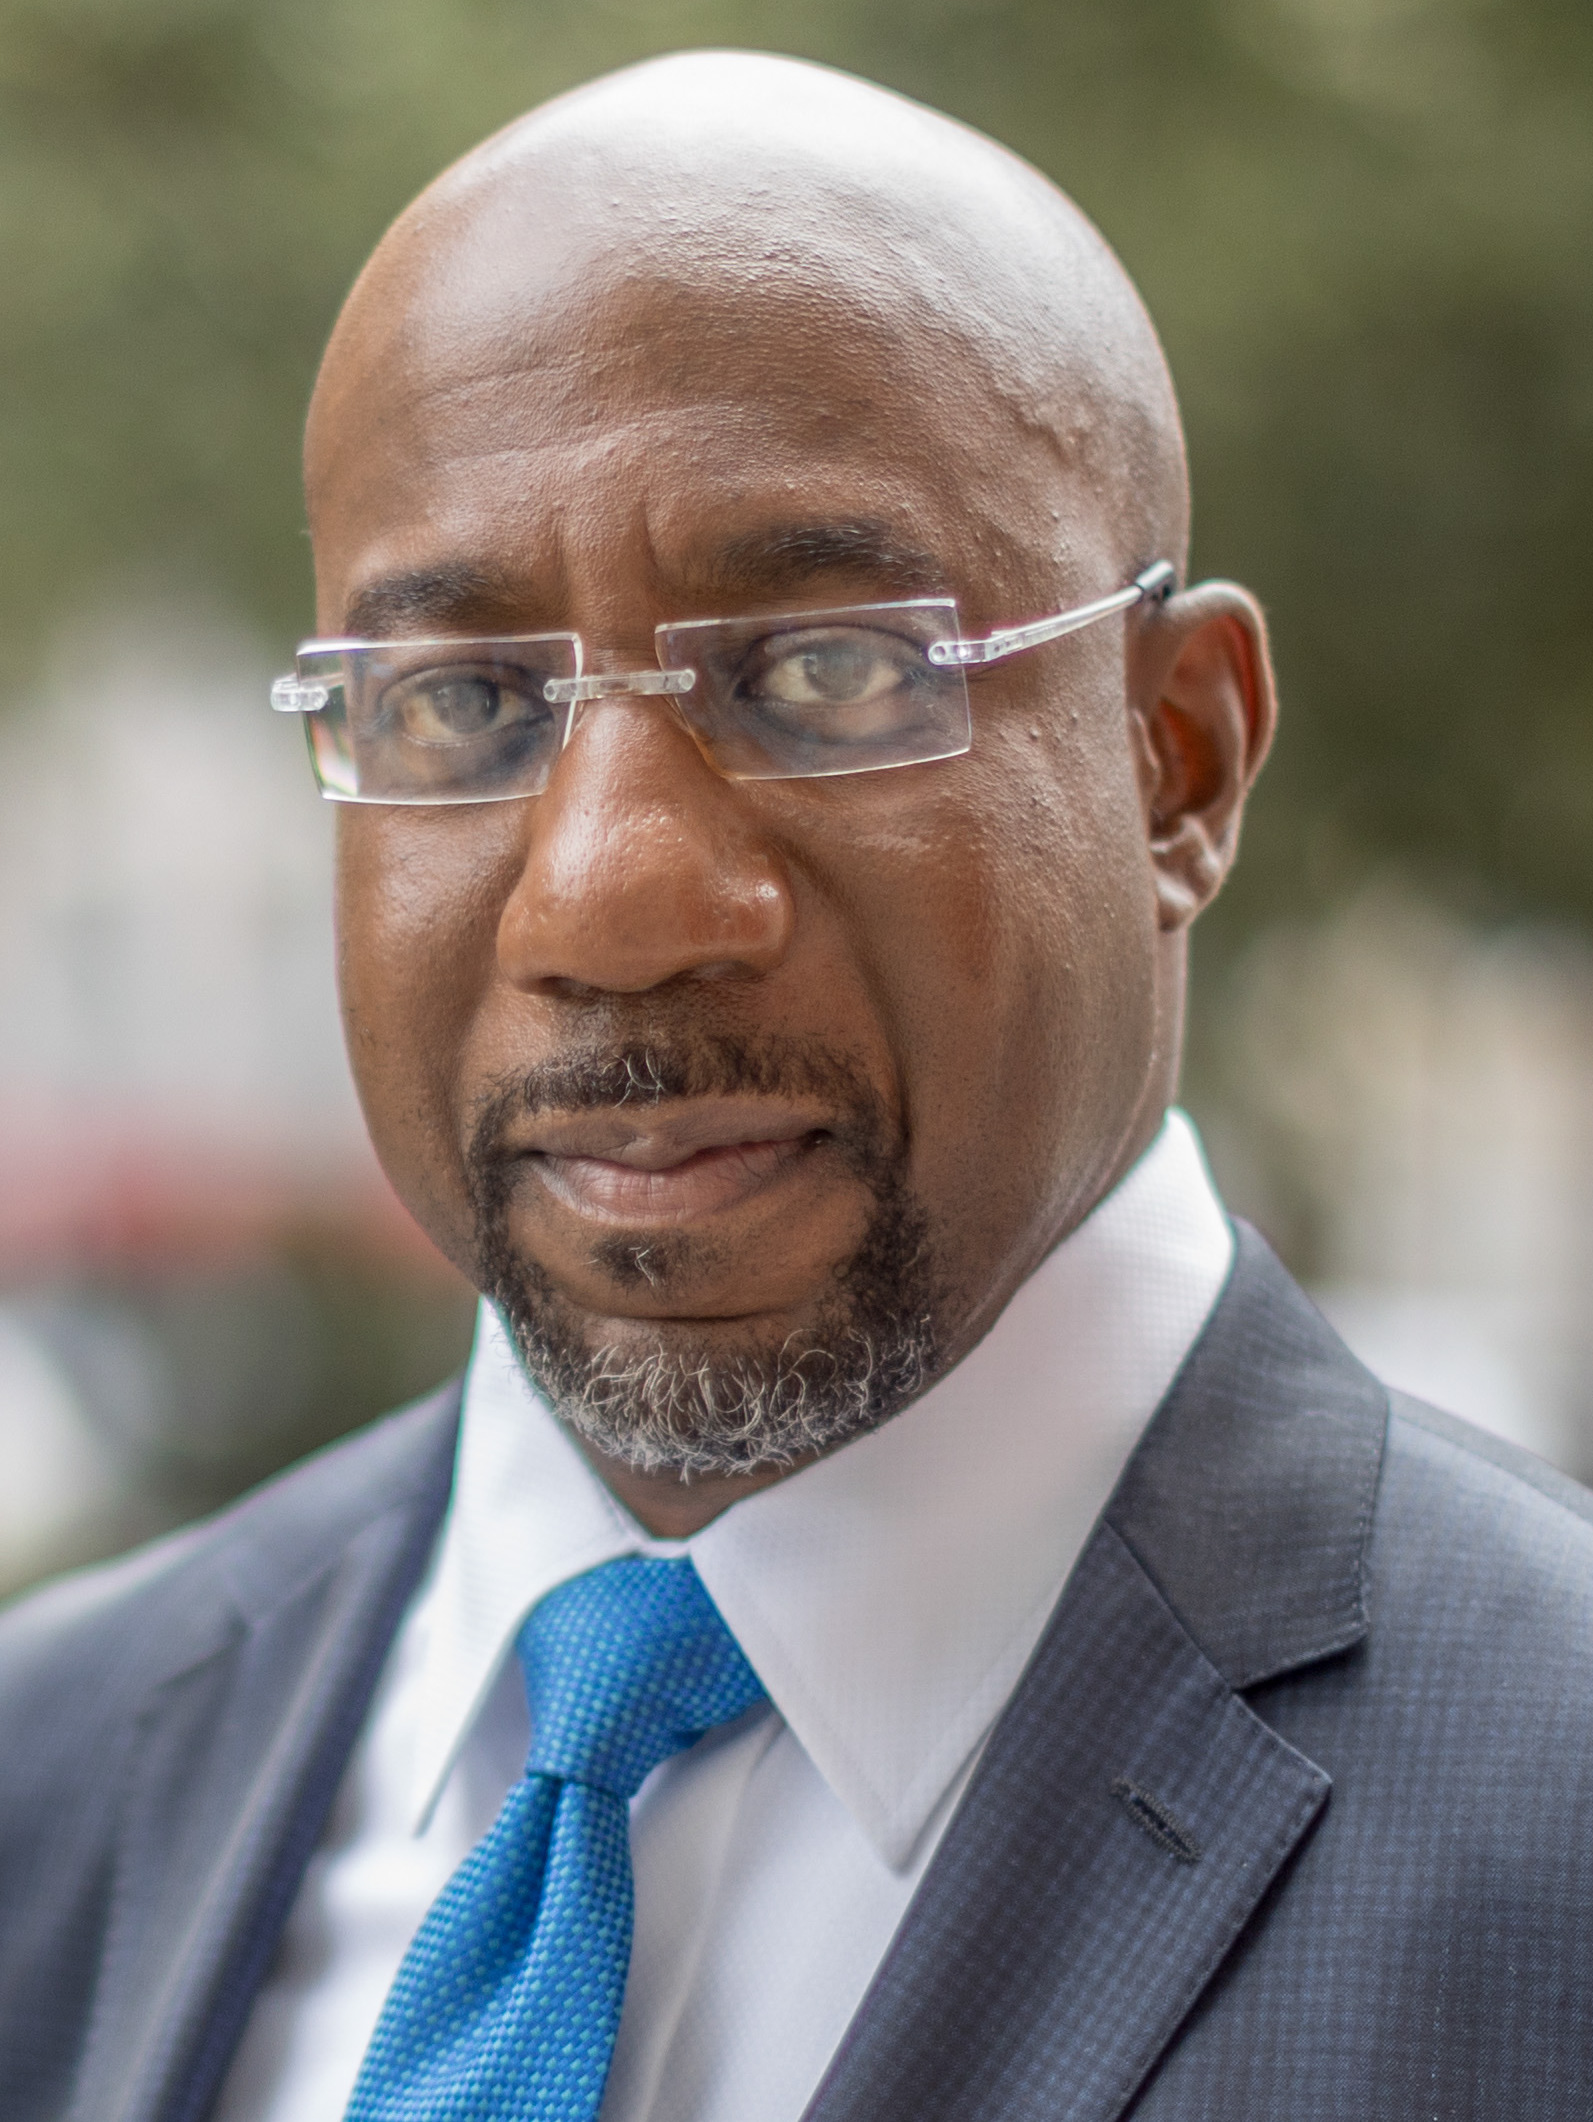 File:Raphael Warnock for Senate (cropped).jpg - Wikimedia Commons